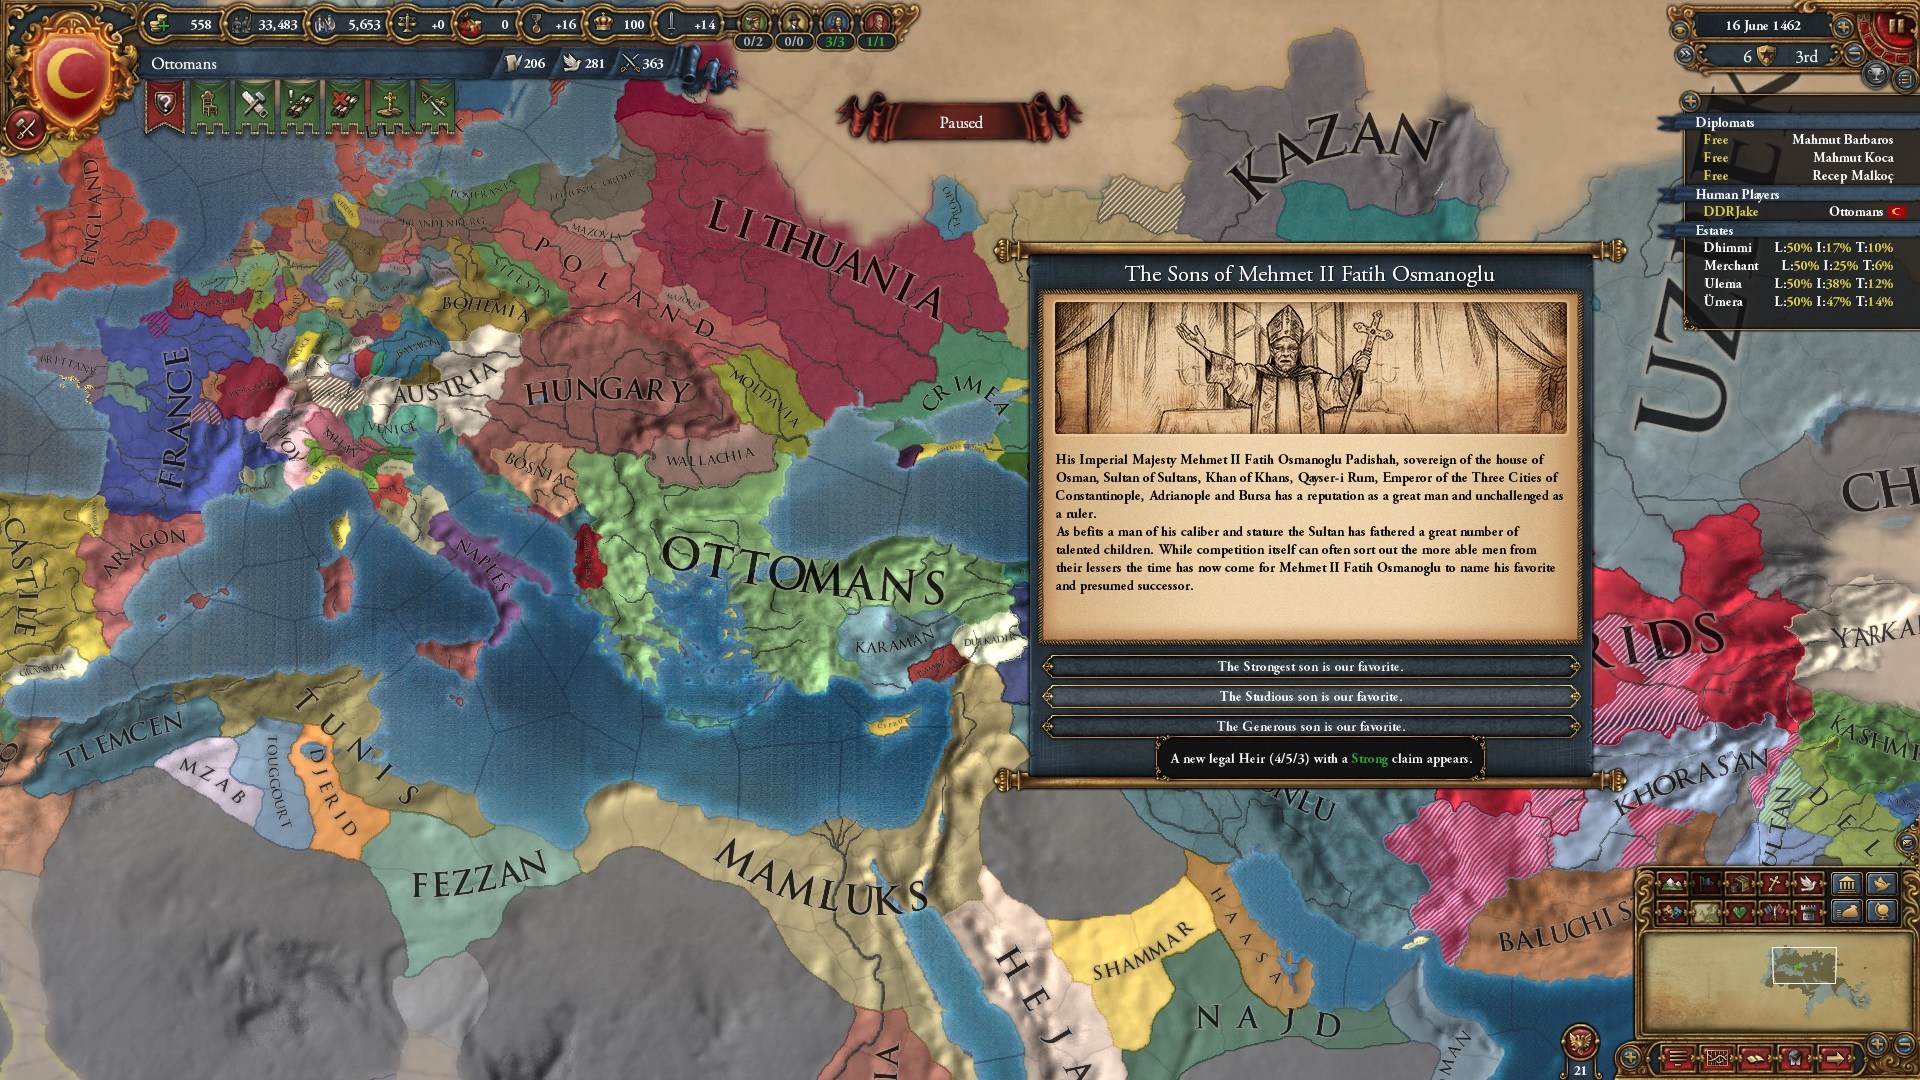 eu4 development diary 23rd of june 2016 paradox interactive forums